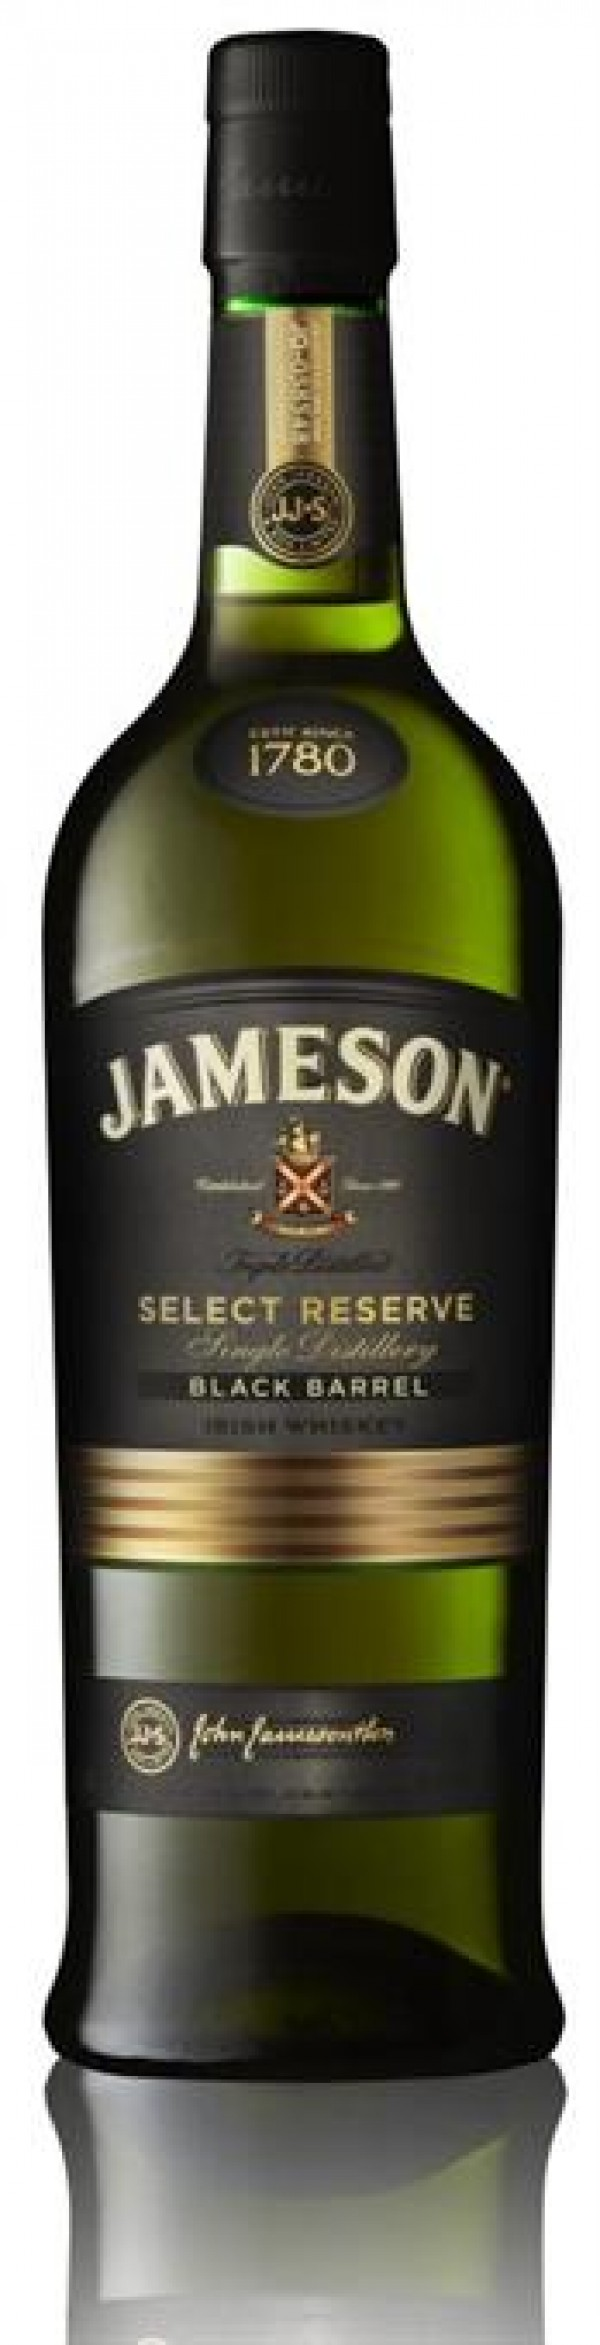 Jameson Irish Whiskey Black Barrel Select Reserve 80